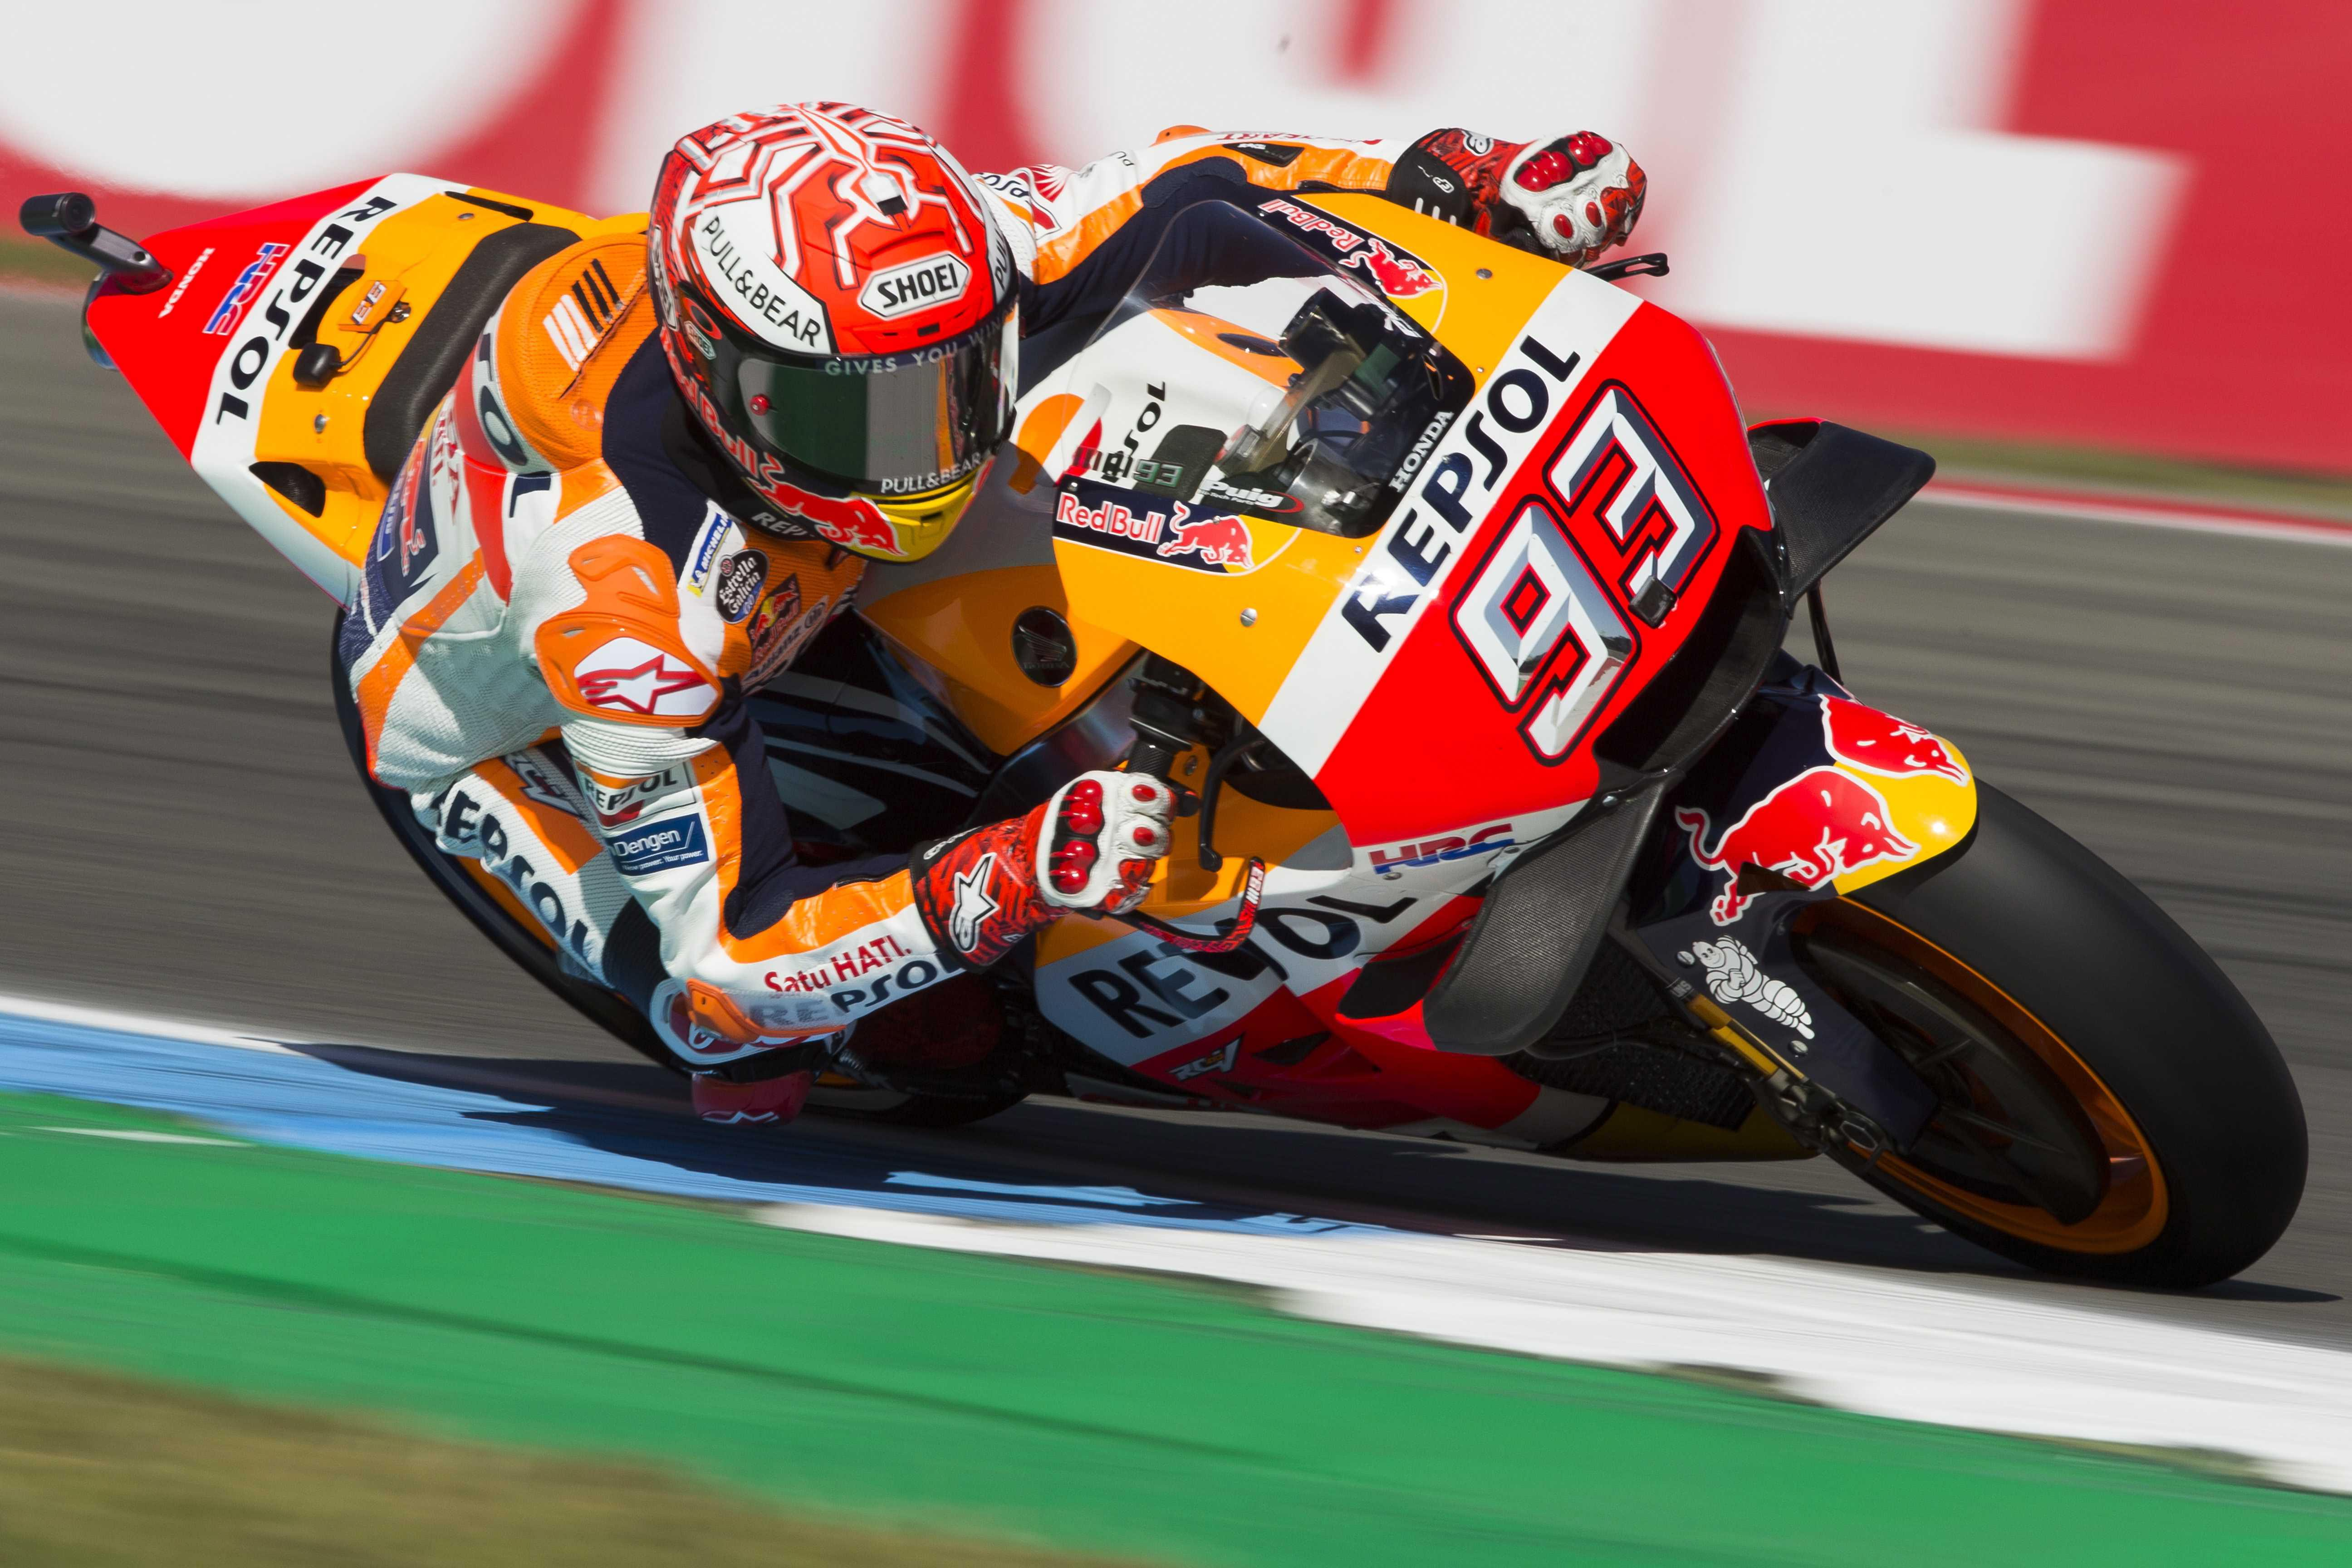 Marc Marquez will not want a repeat of his disastrous experience in Italy where he fell off his bike